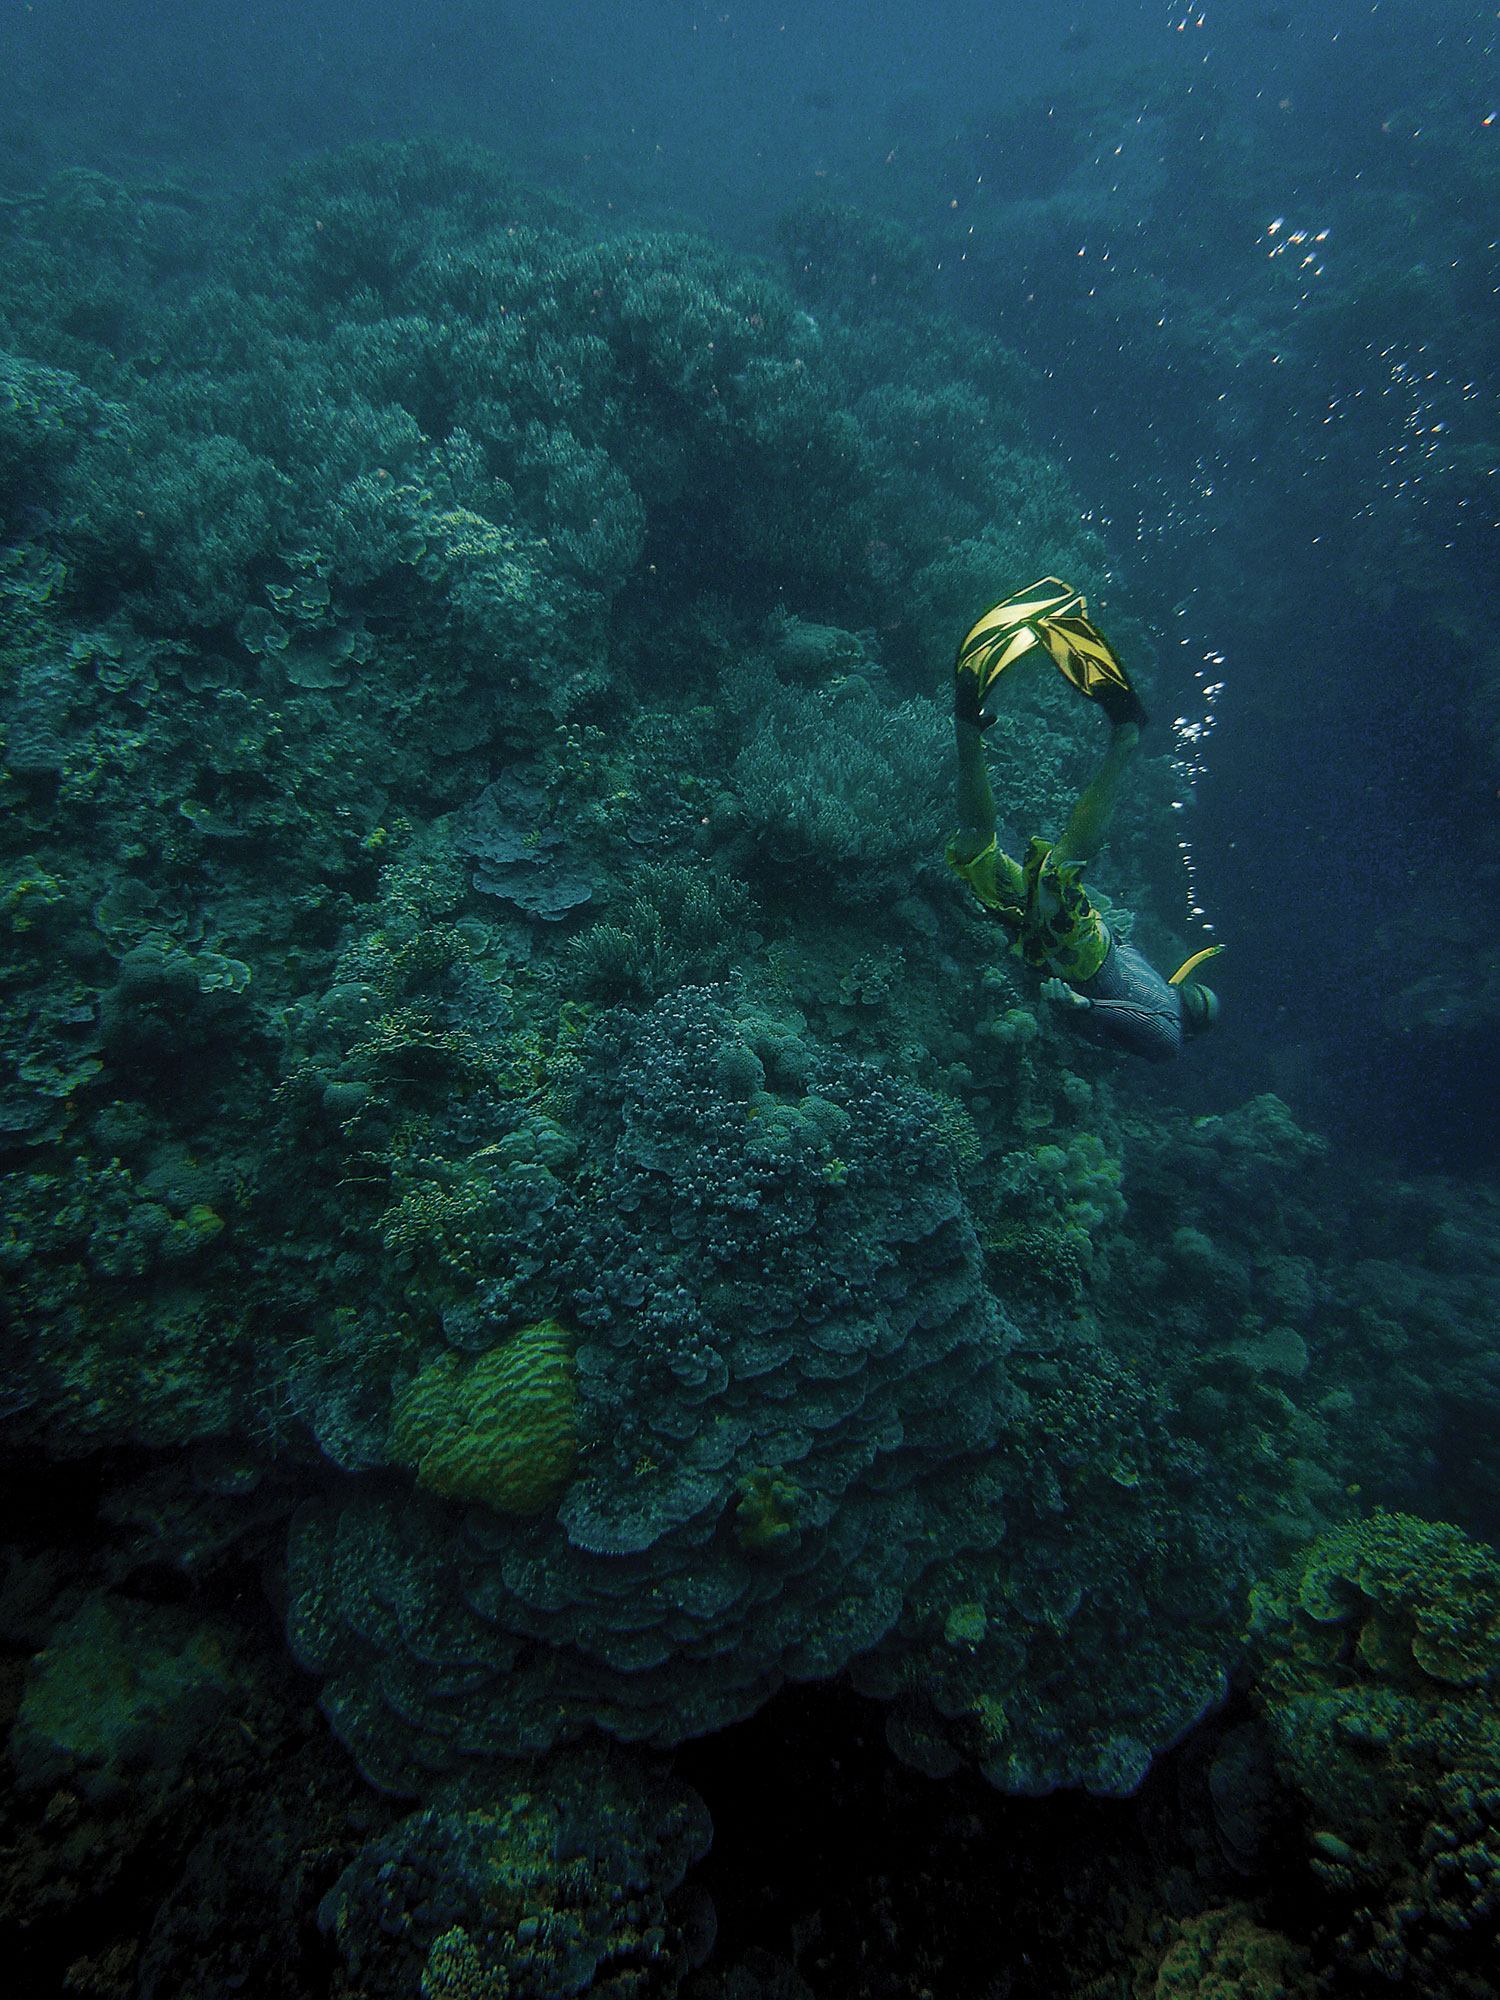 The Temotu Province of the Solomon Islands boasts pristine reefs with jaw-dropping diversity of coral and fish. So far, these remote islands have avoided the industry, industrial agriculture, concentrated tourism, and dense population centers that have severely damaged so many coral reefs around the world.